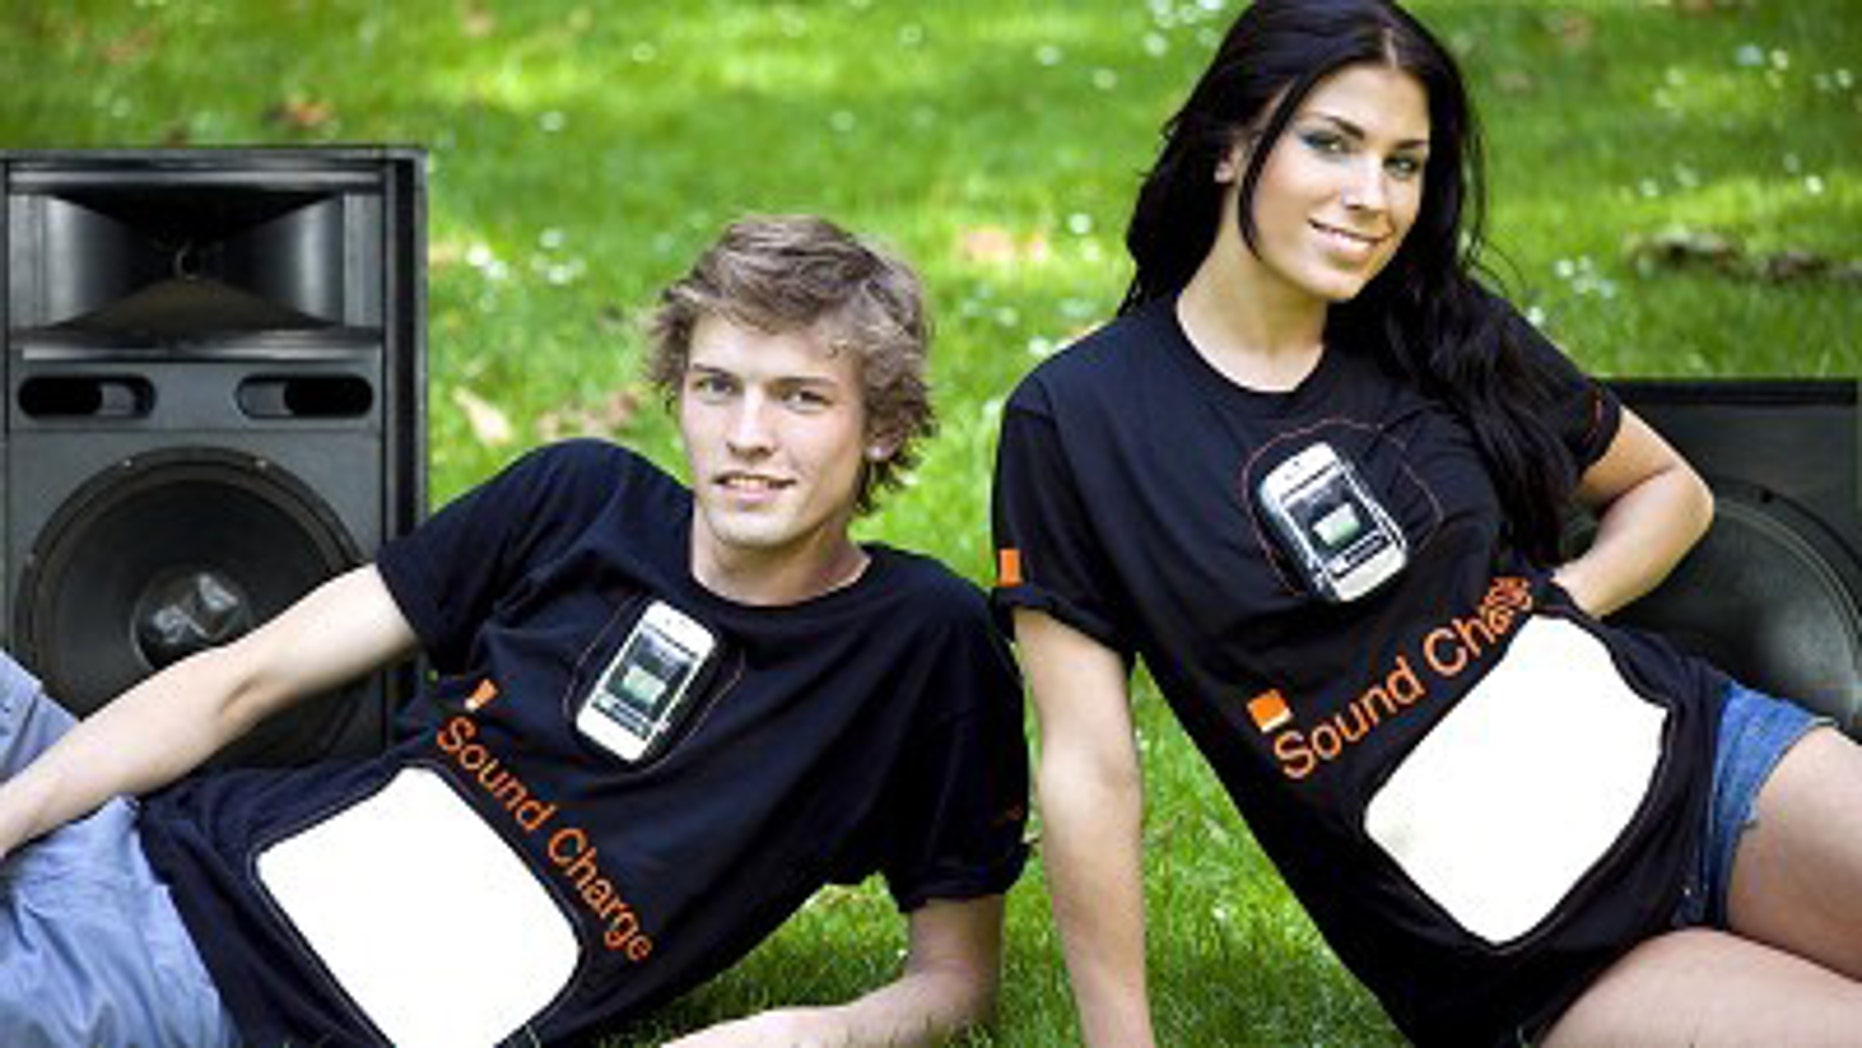 A new experimental t-shirt from mobile phone provider Orange can charge a cell phone.